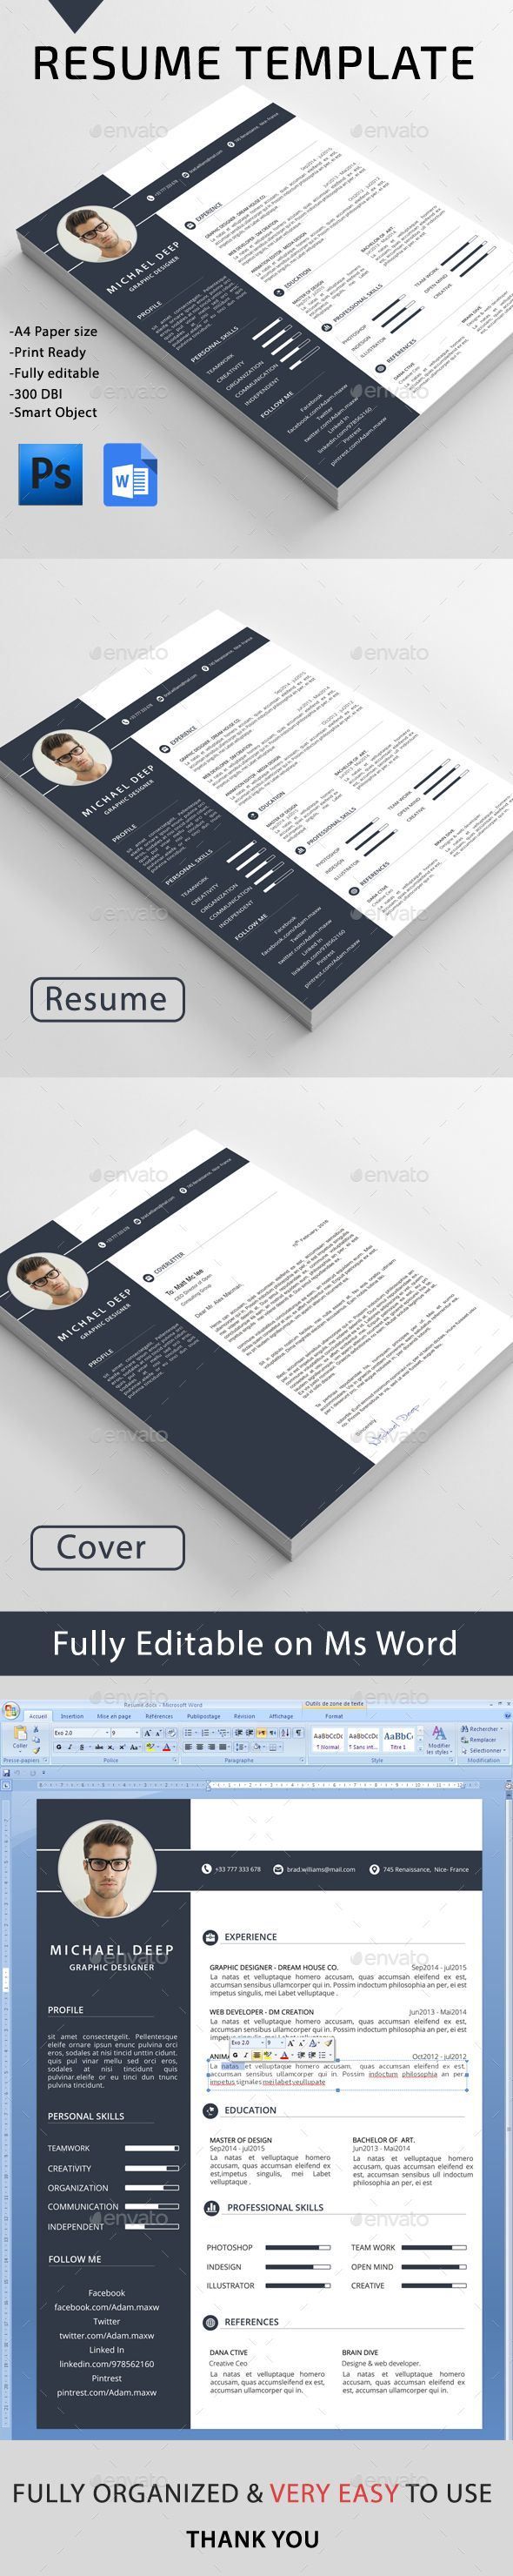 Cool 1 Year Experience Resume Format For Dot Net Big 1 Year Experienced Software Developer Resume Sample Square 1.5 Button Template 10 Tips For Writing A Good Resume Young 1099 Employee Contract Template Orange17 Year Old Resume Template 25  Best Ideas About Functional Resume Template On Pinterest ..